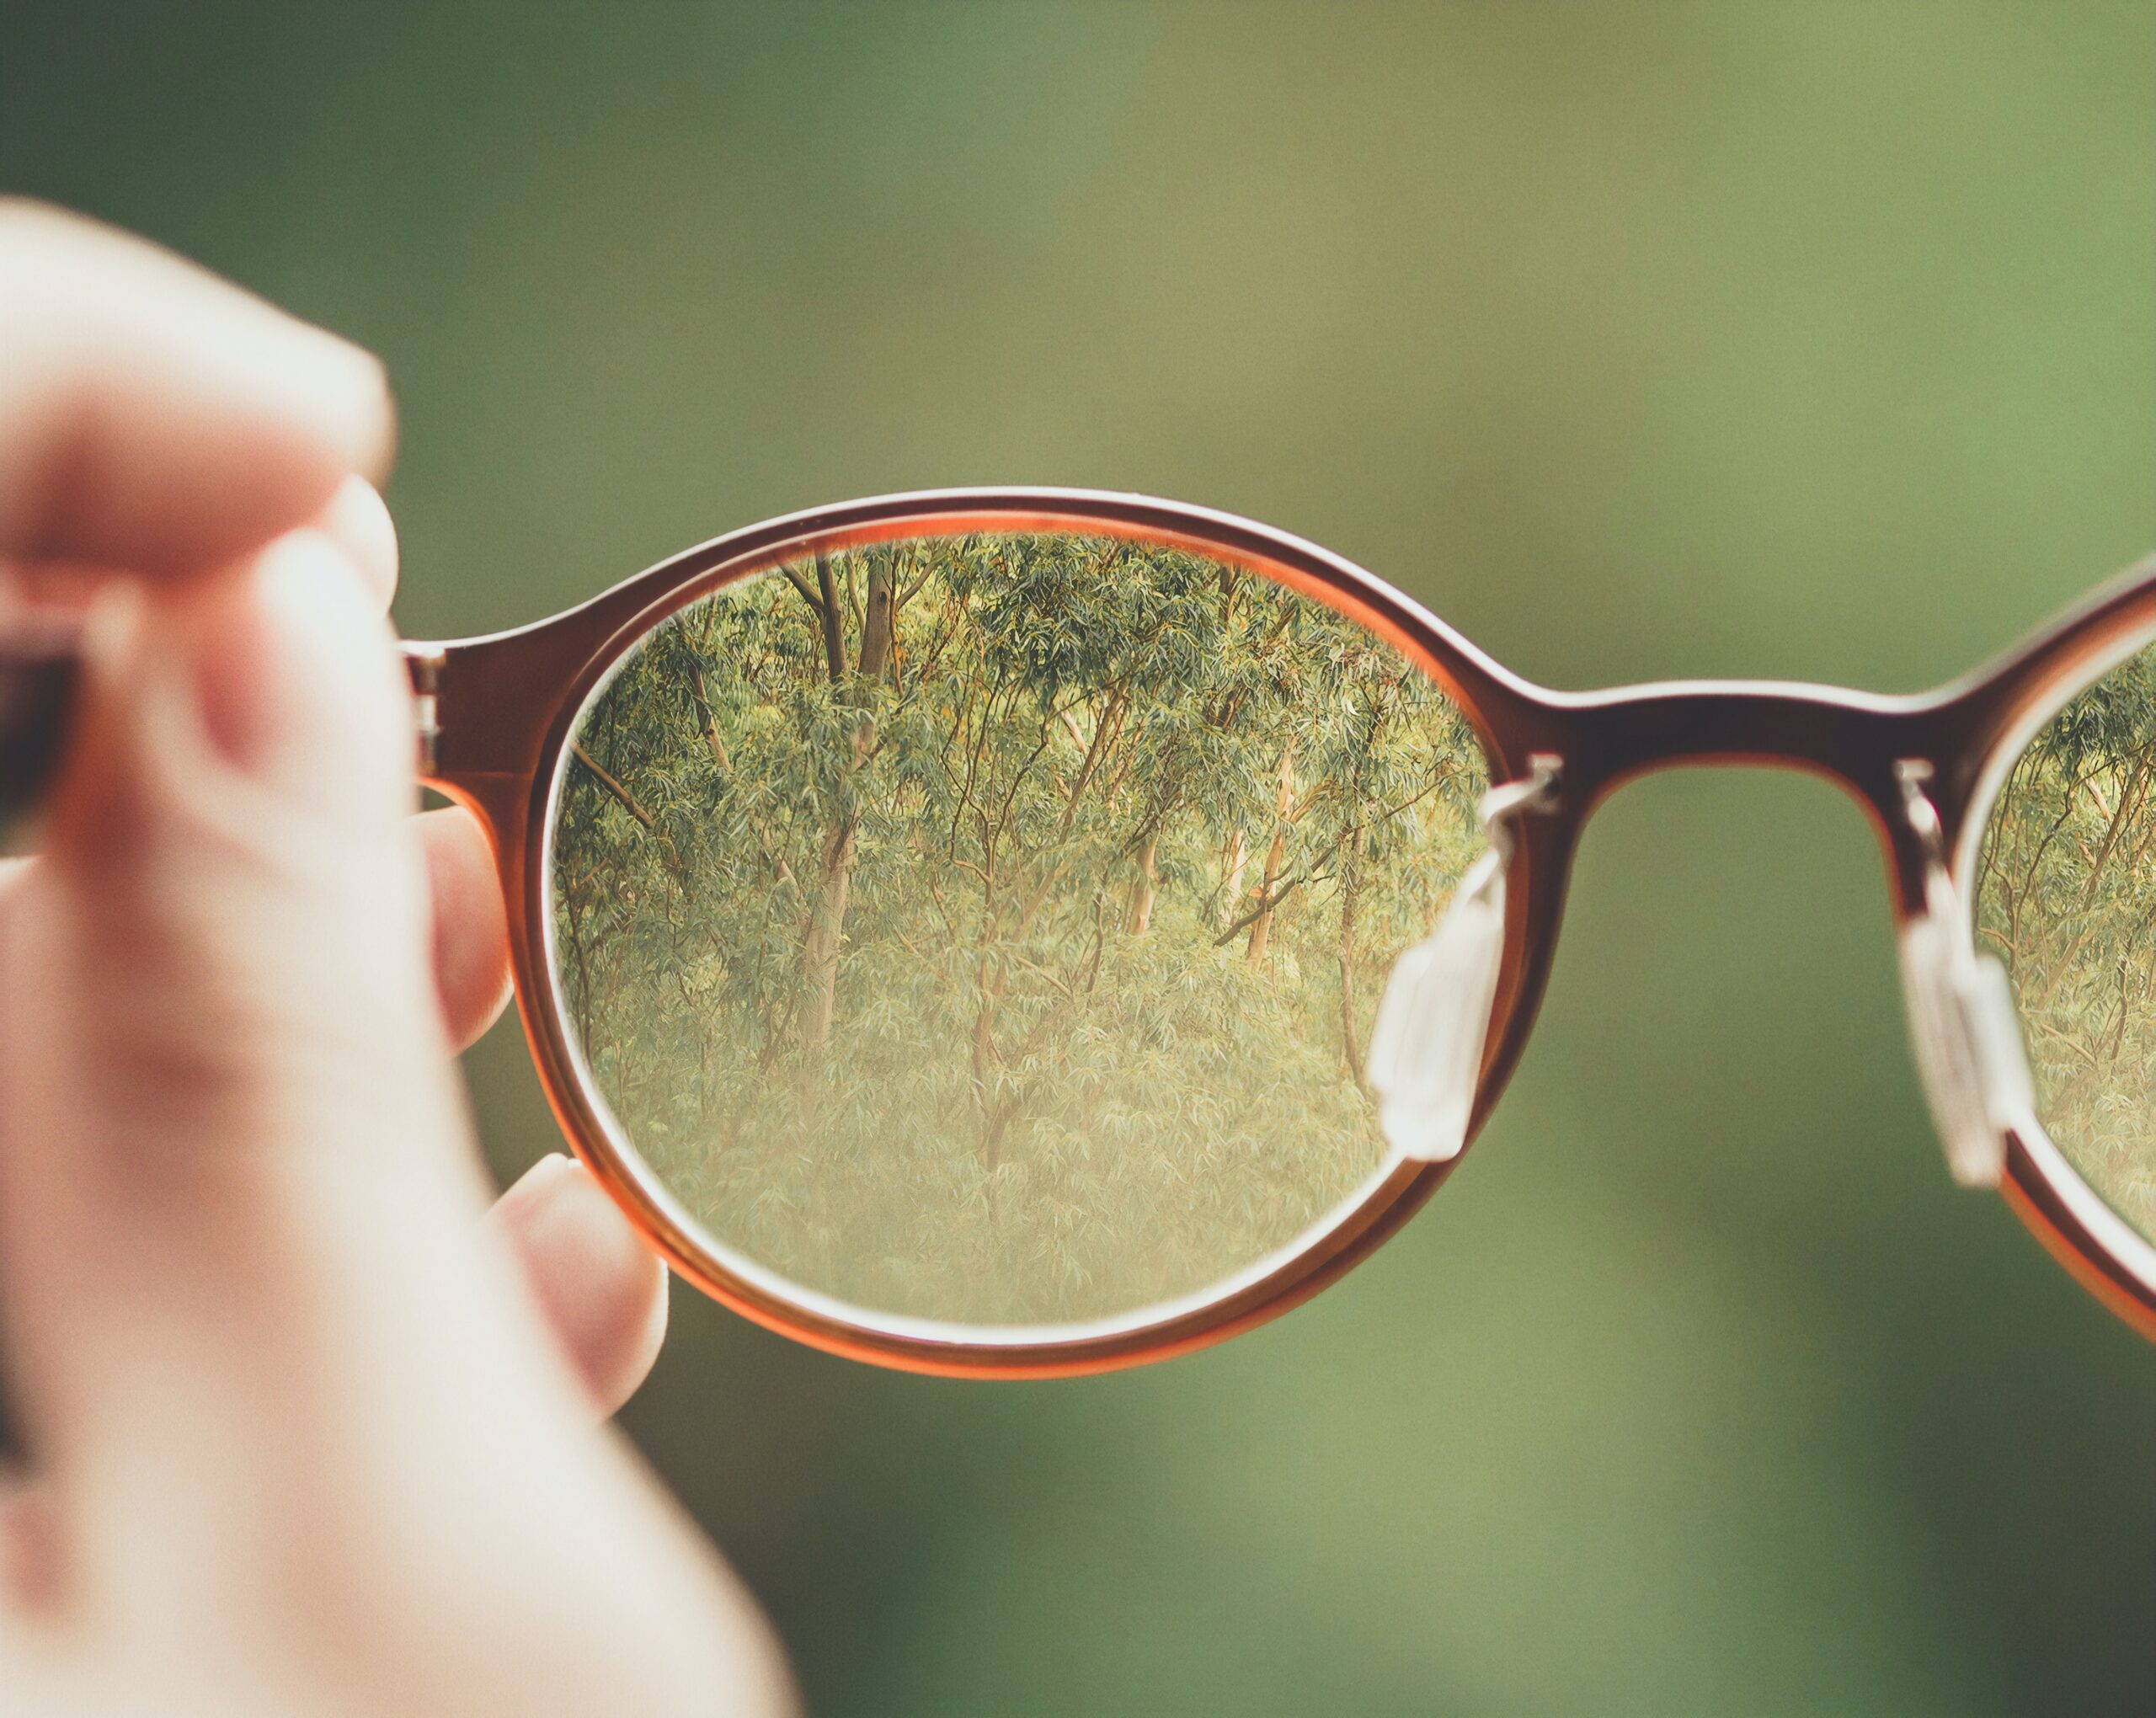 2.0 – Reframing the lens through which we look